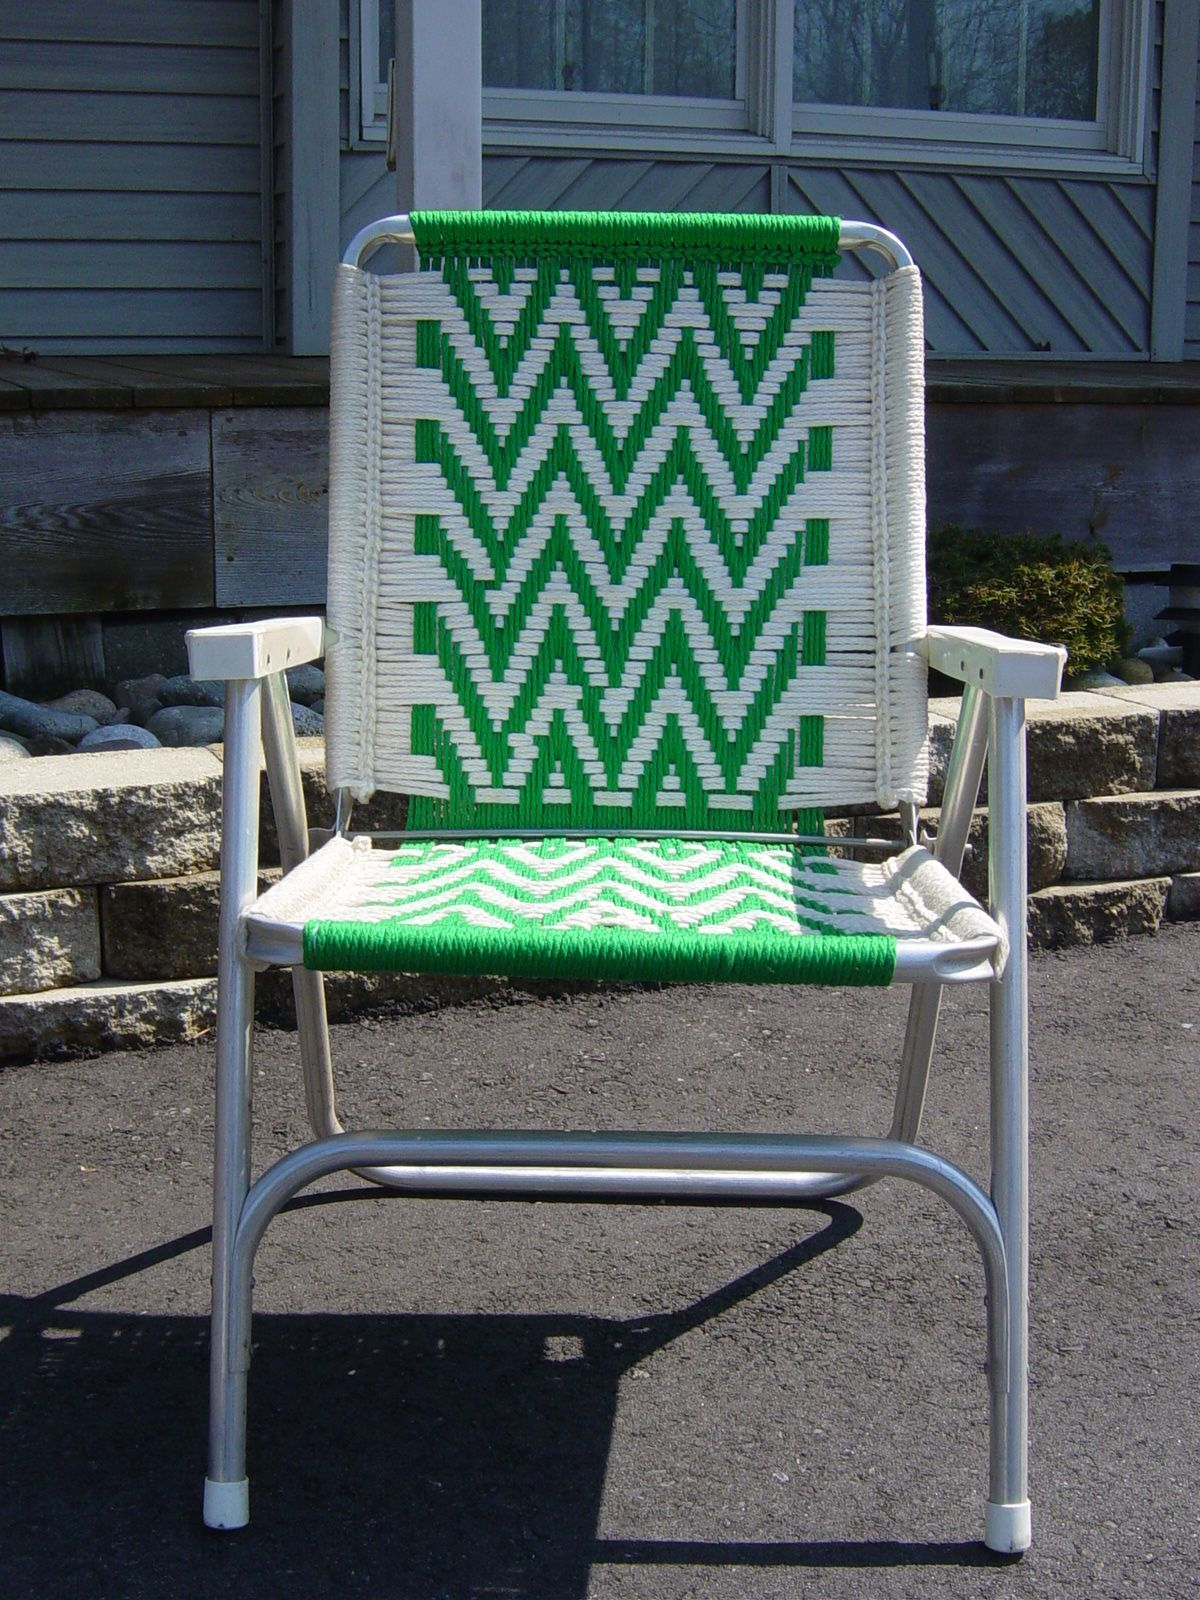 Woven Lawn Chair Awesome Woven Lawn Chair Sewing For Beginners Macrame Chairs